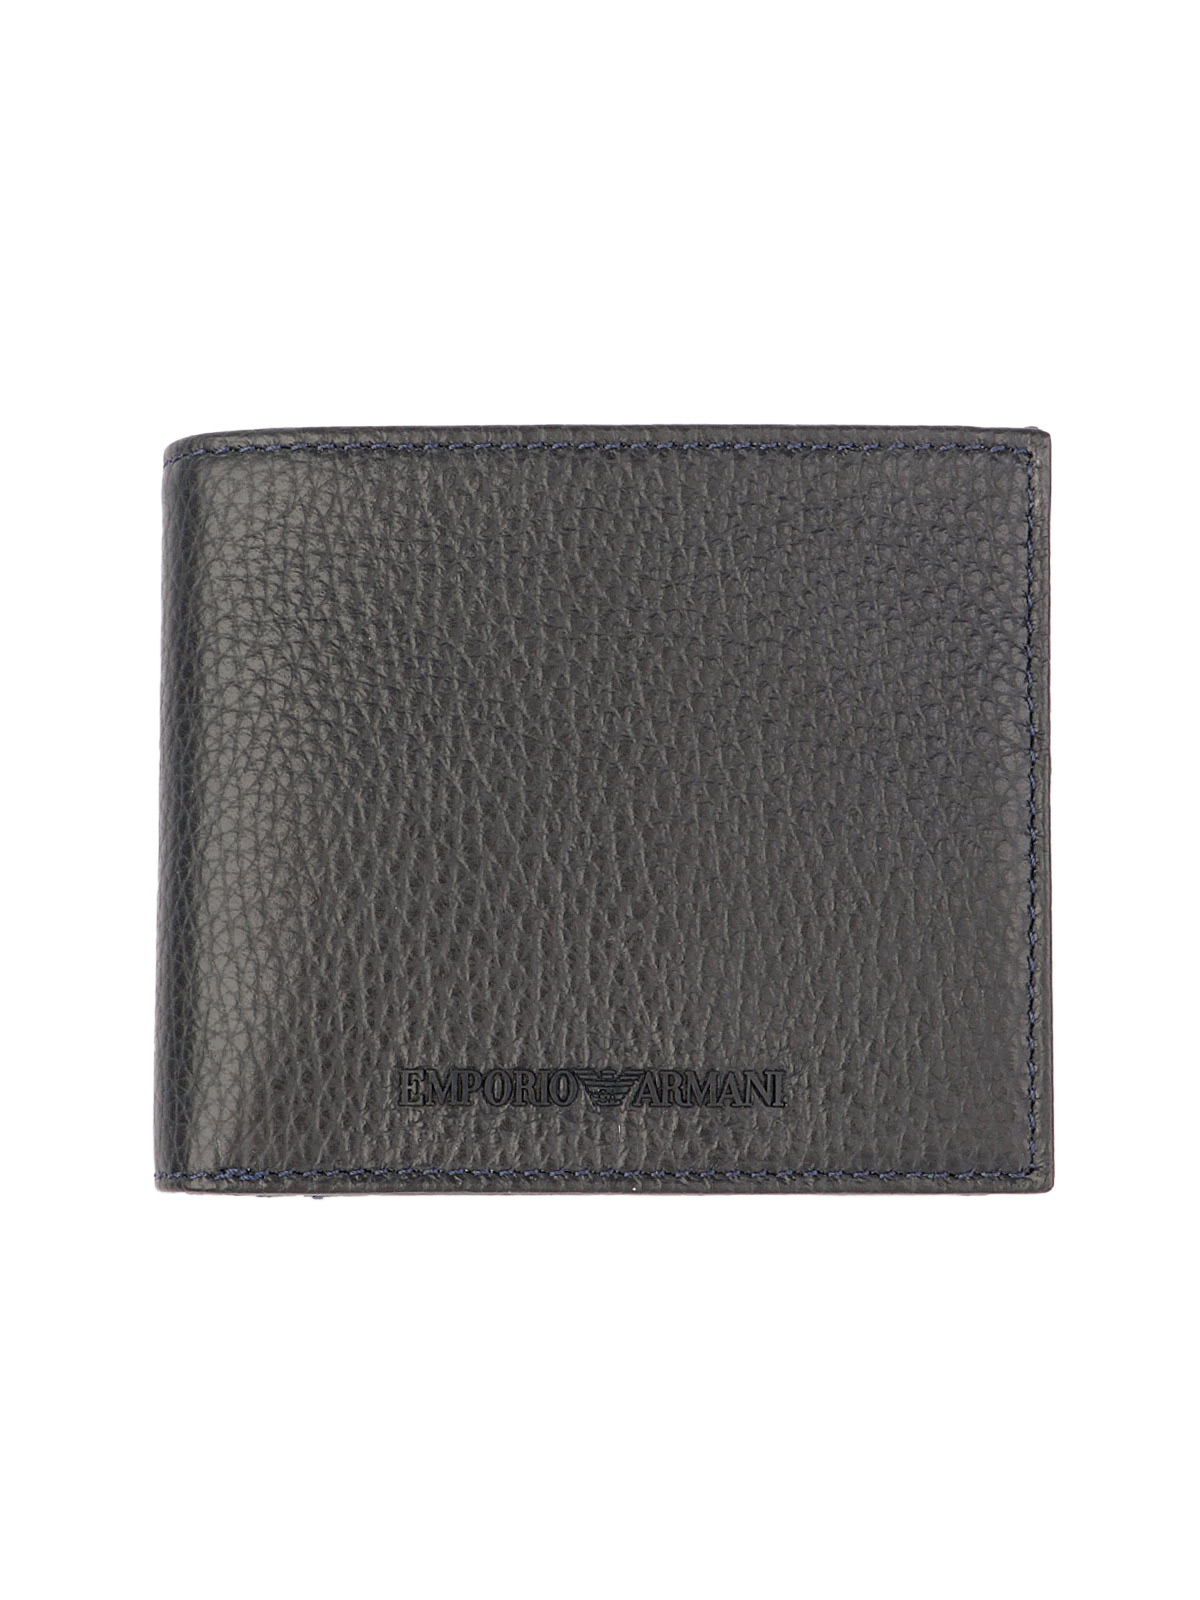 Picture of EMPORIO ARMANI   Men's Tumbled Leather Wallet